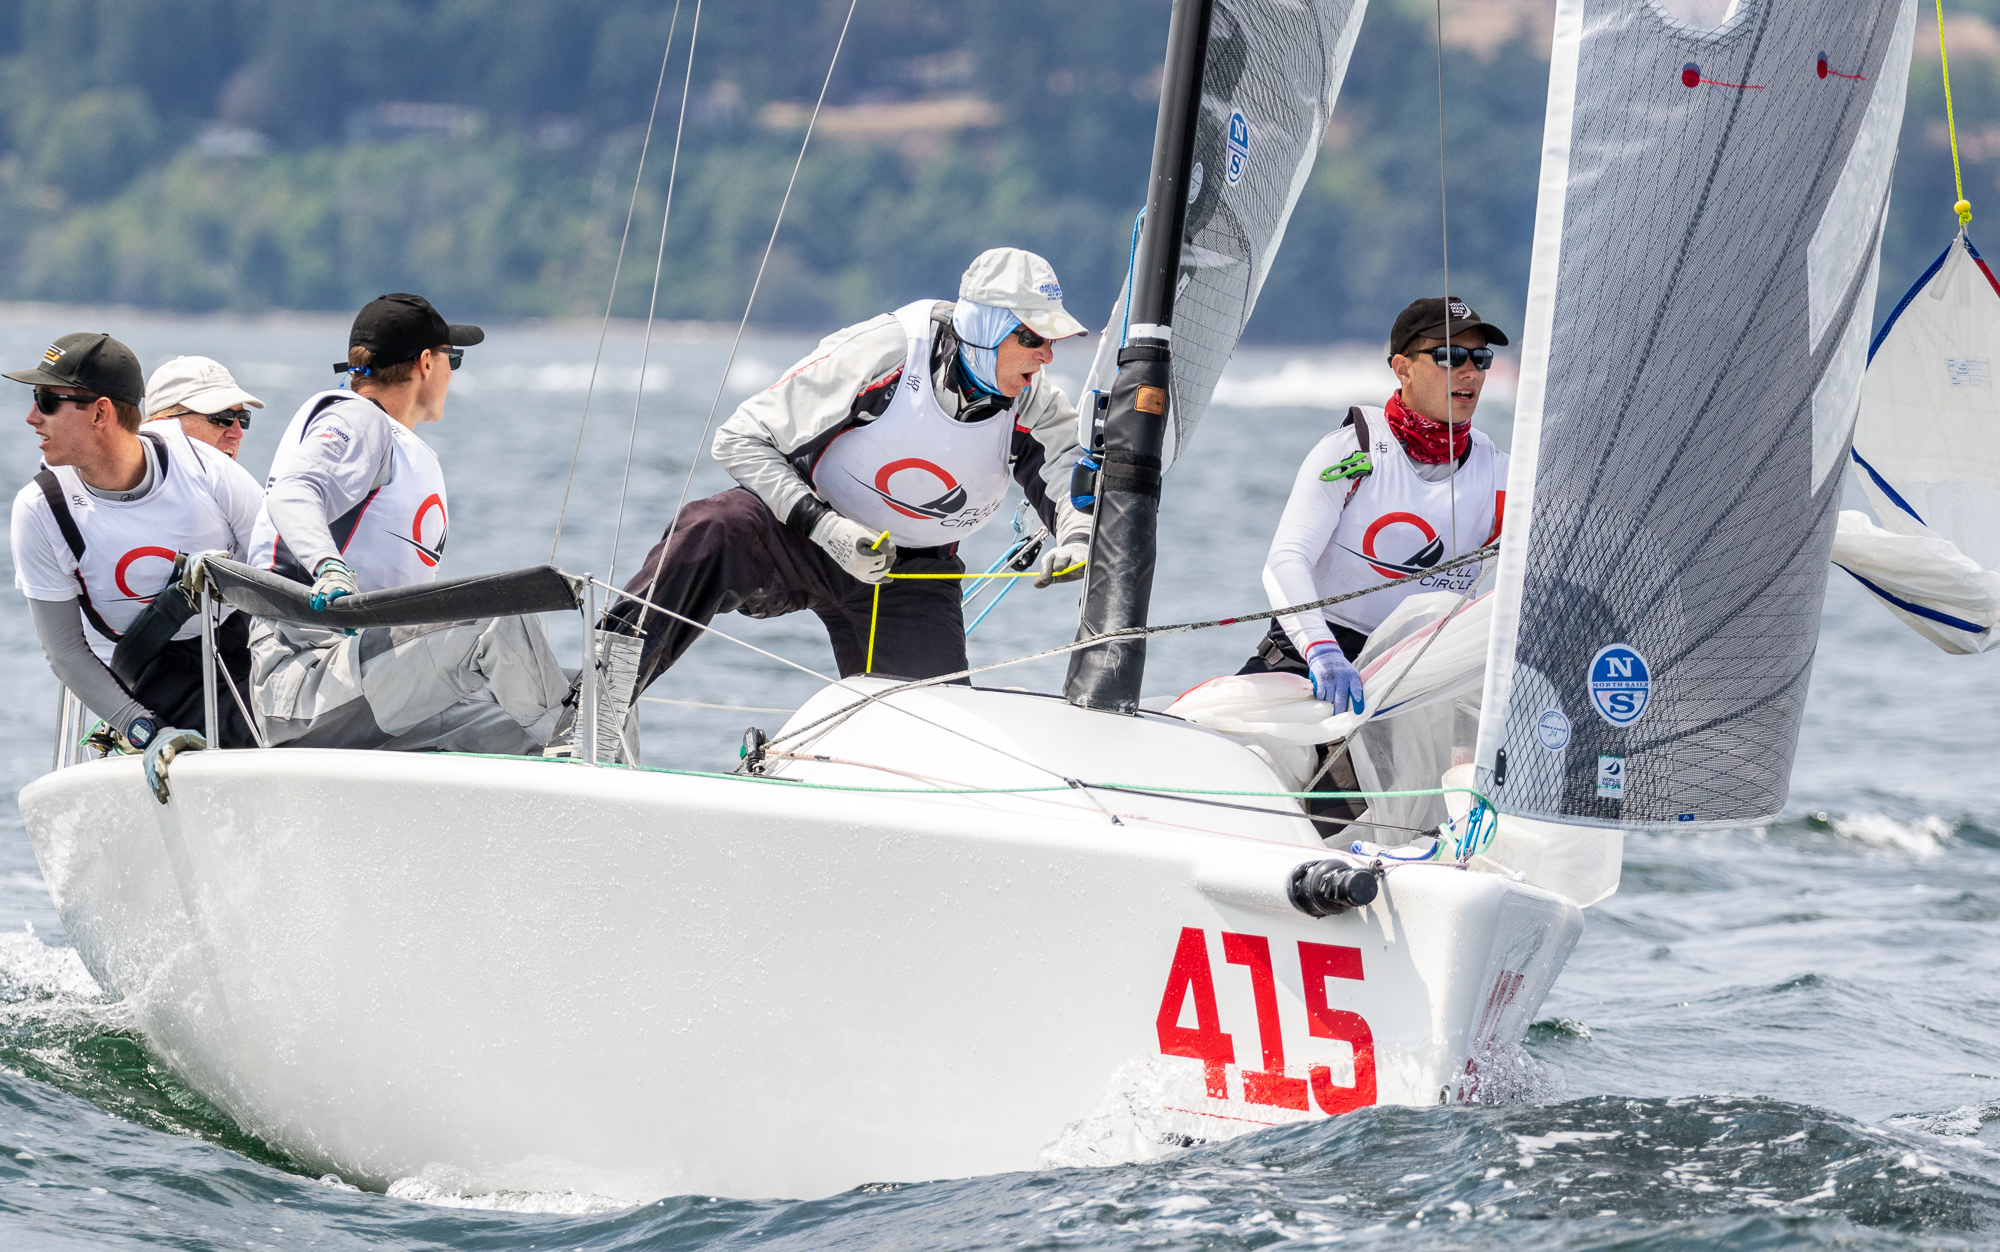 2018 Melges 24 National and World (Corinthian) Champion -    CAN415 FULL CIRCLE, Victoria, BC Canada;Bob Britten-Helm, Graham Harney, Jose Grandizo, Weigan-Gunn, Reid Cannon - Photo: IM24CA/ZGN   Following a convincing overall win in the first race Victoria's Bob Britten and crew CAN415 FULL CIRCLE found their way to the top of the Corinthian fleet and fifth overall. Local speedster CAN151 SUNNYVALE steered by Frazer McMillan and Mike Bond's CAN 591 HOLD MY BEER of Vancouver made for an all-BC Canada Corinthian National Championship podium.    Results